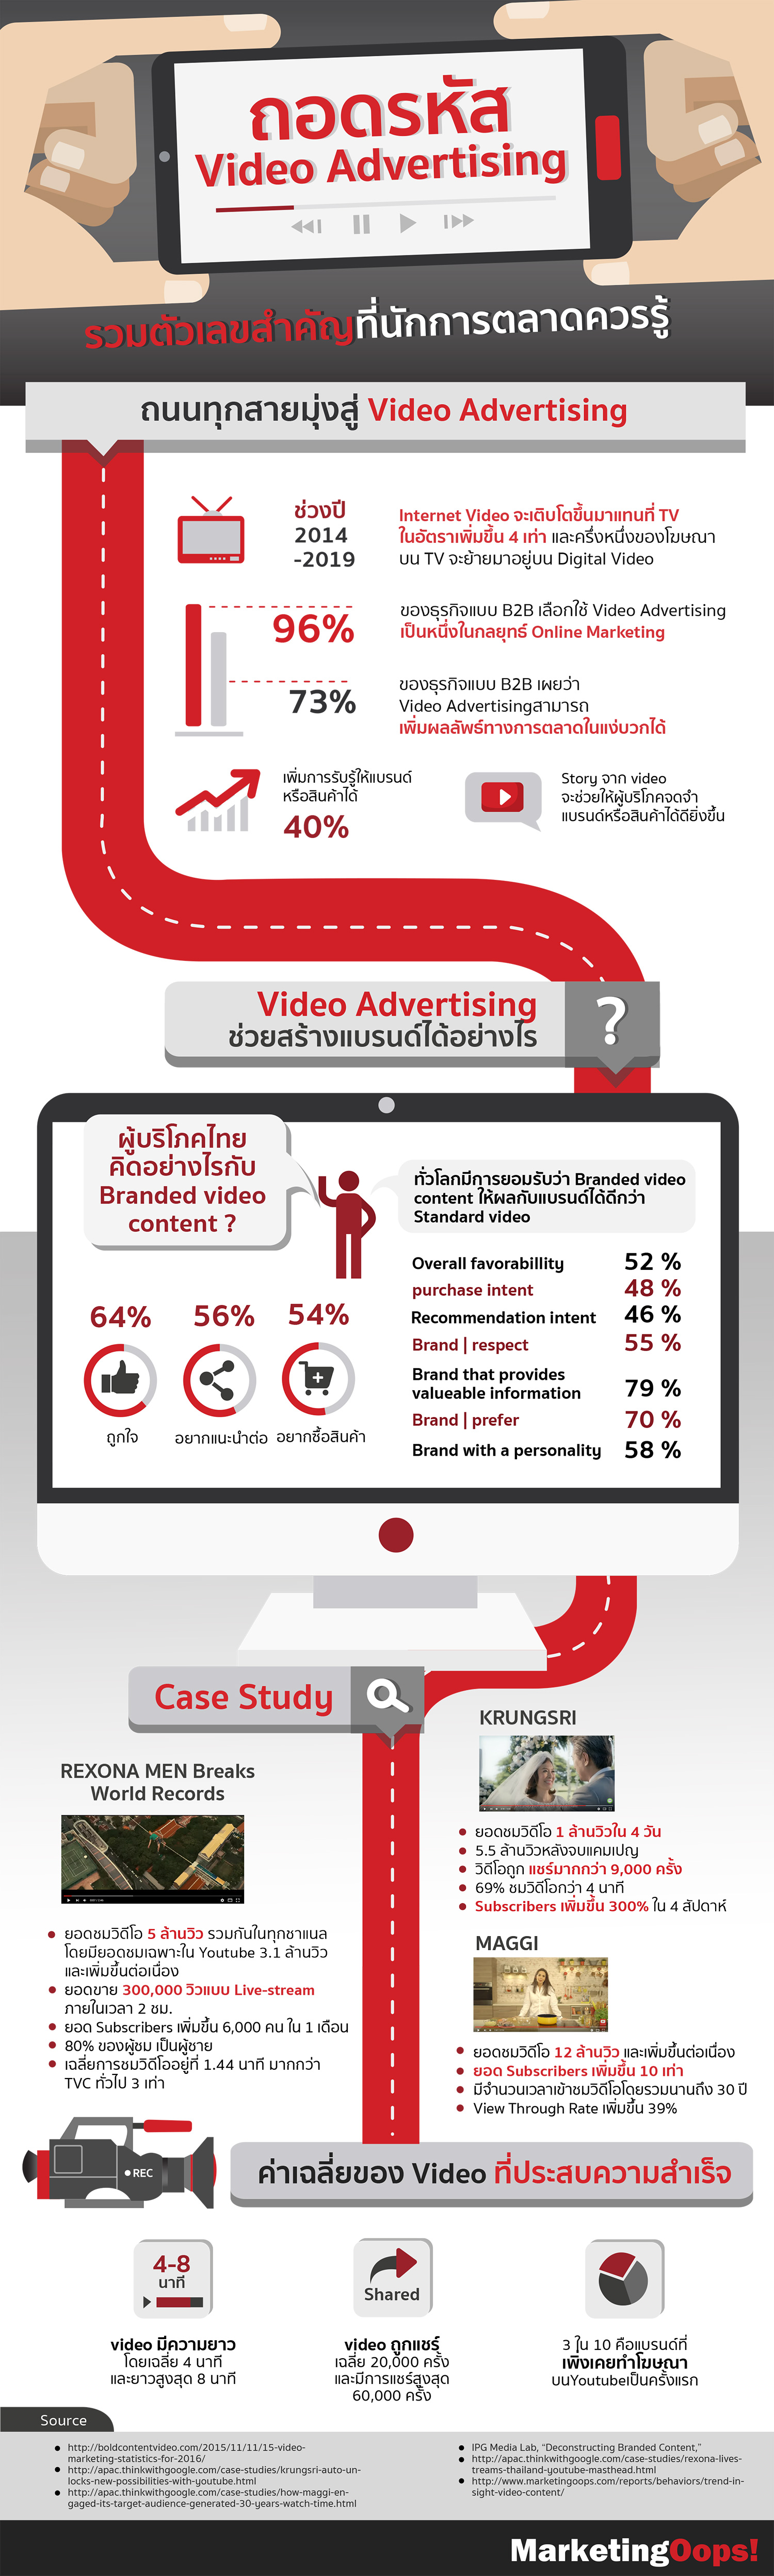 video-advertising-infographic